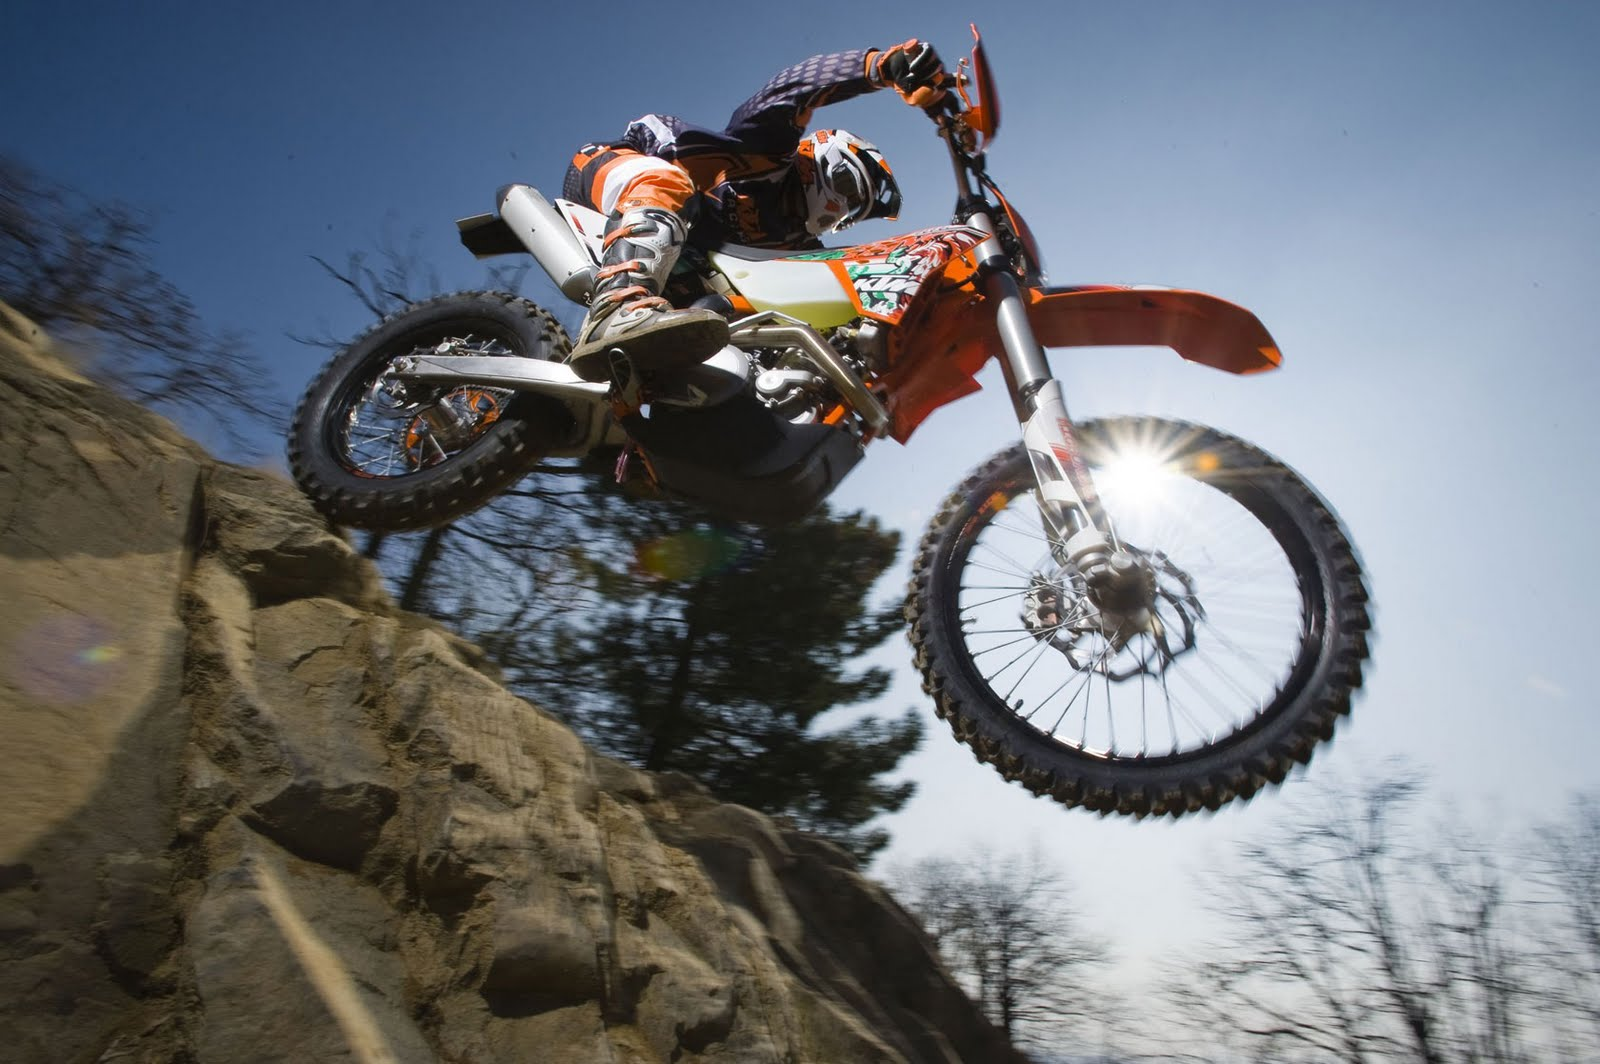 Motorcycle Pictures: KTM 530 EXC Sixdays 2011 International